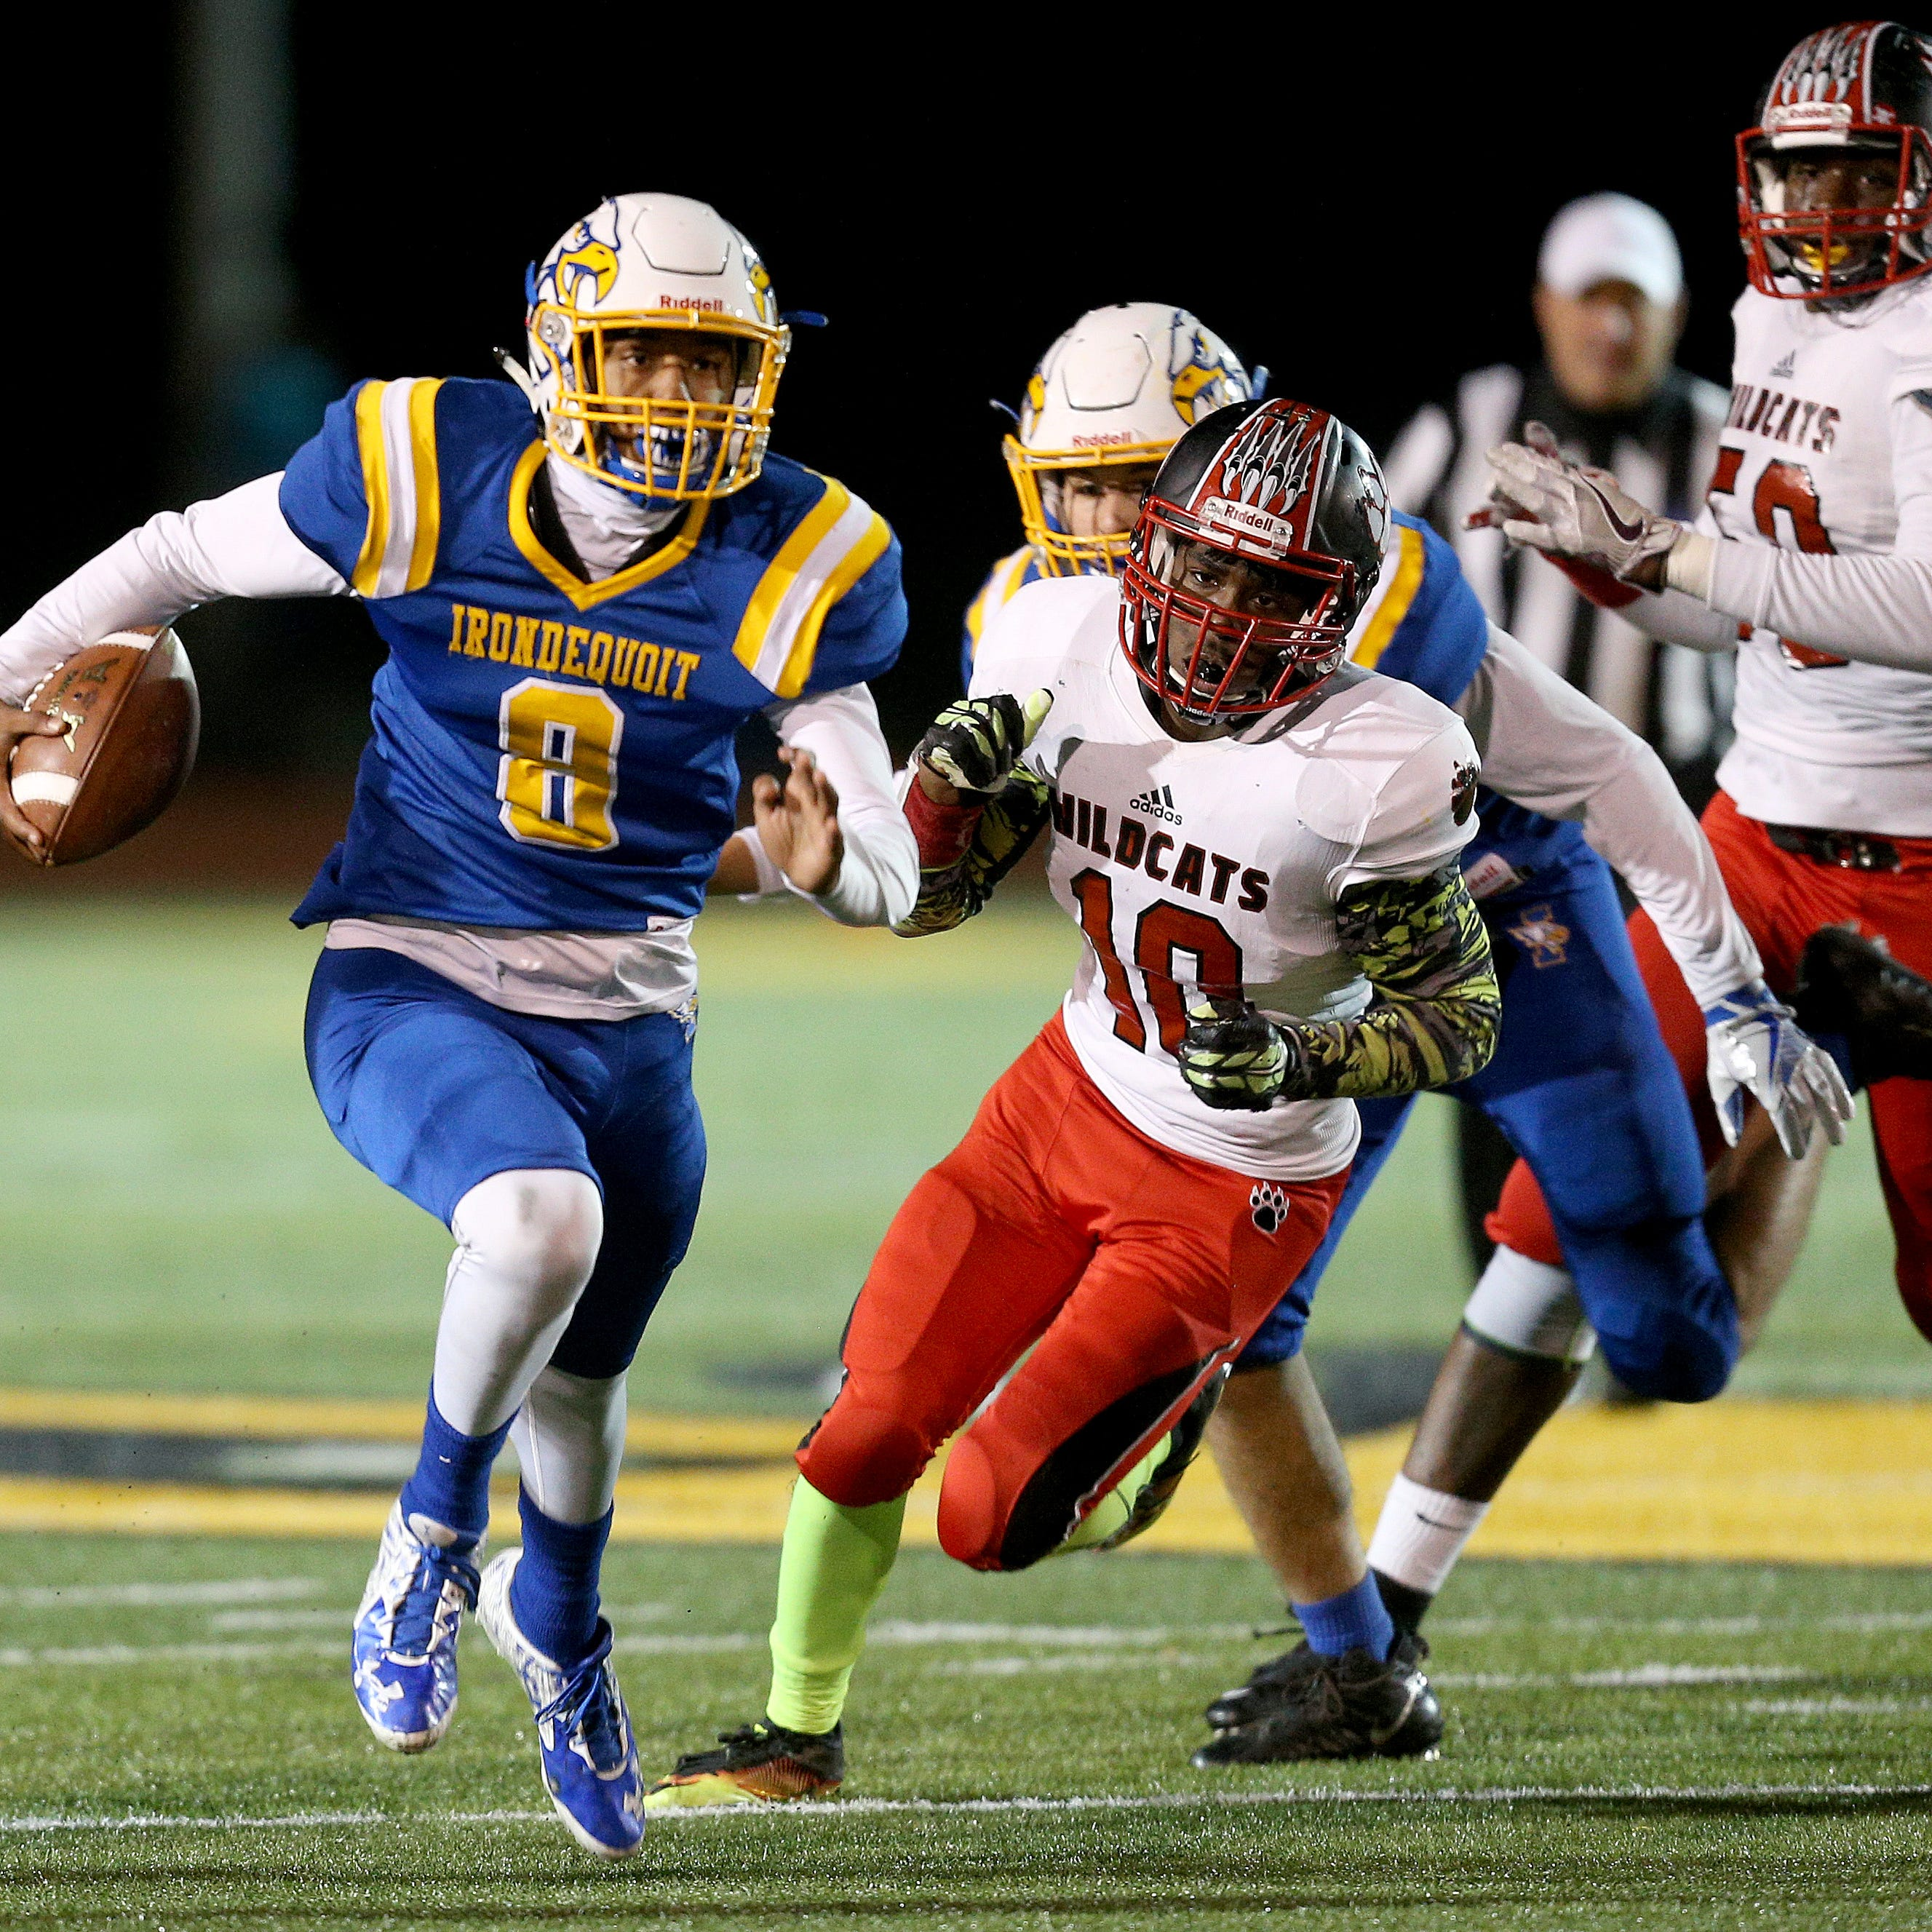 Irondequoit quarterback Freddy June Jr. carries the ball  in a 40-19 loss to Wilson in the 2017 Section V Class A final. June was named the 2017 All-Greater Rochester Player of the Year.